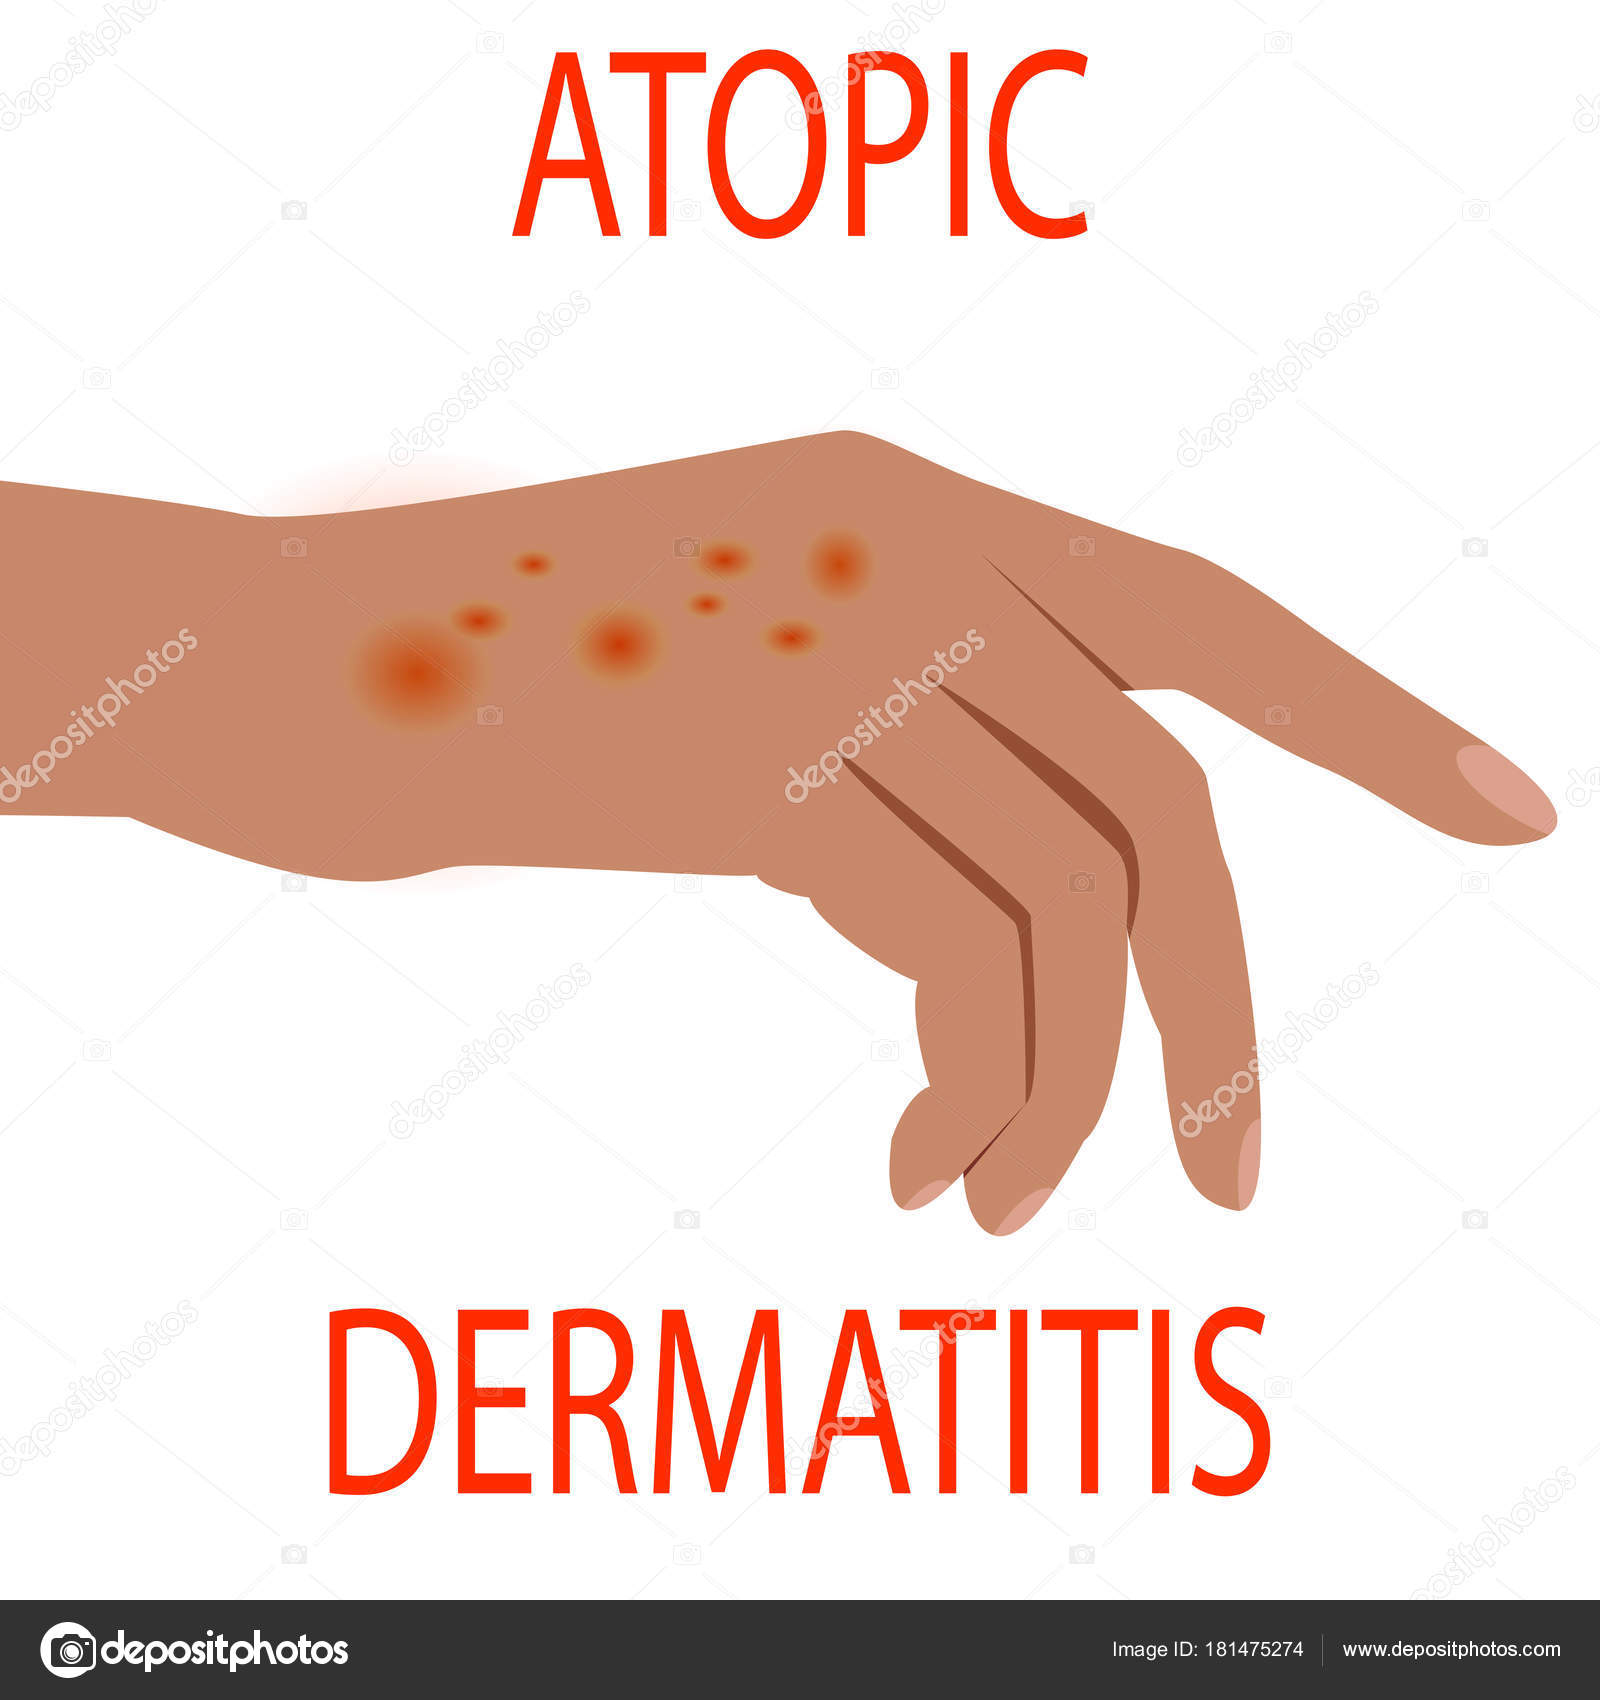 Atopic dermatitis health, medical, skin, pain, dermatitis